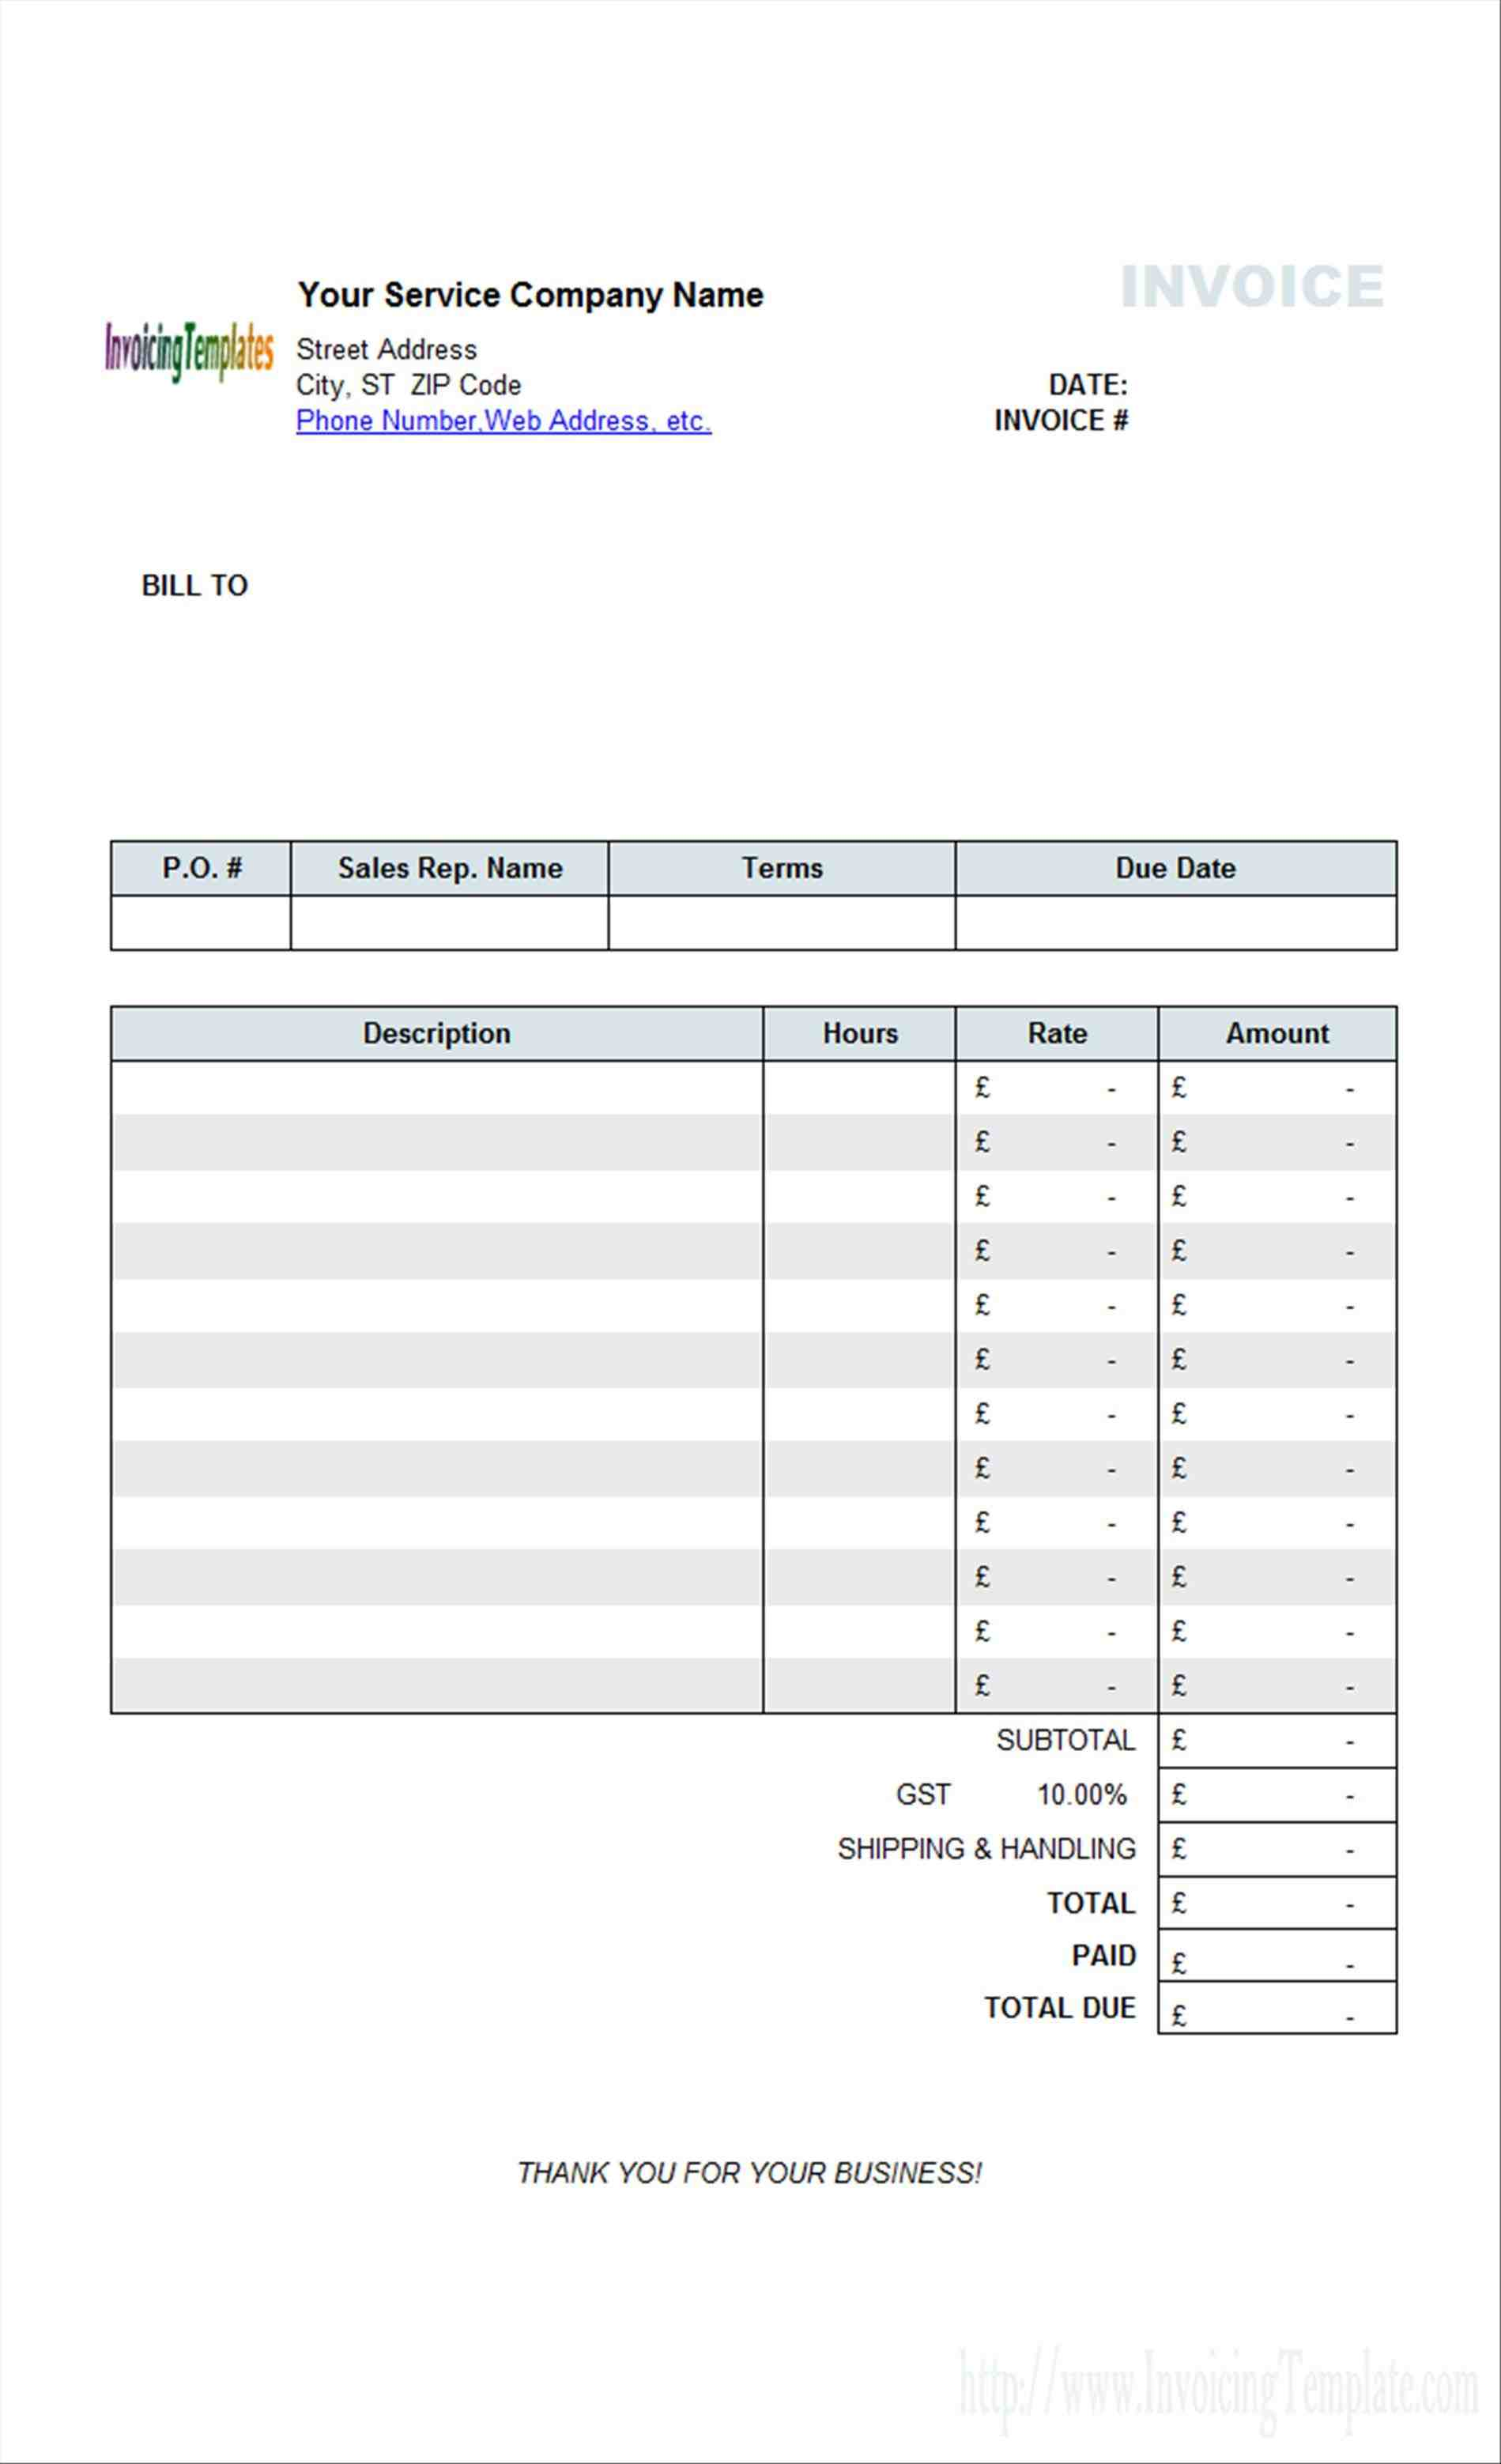 free Free invoice Template template for contractorsrhfieldpulsecom simple basic excel pdf word docrhtemplatescom free Free invoice Template simple basic template